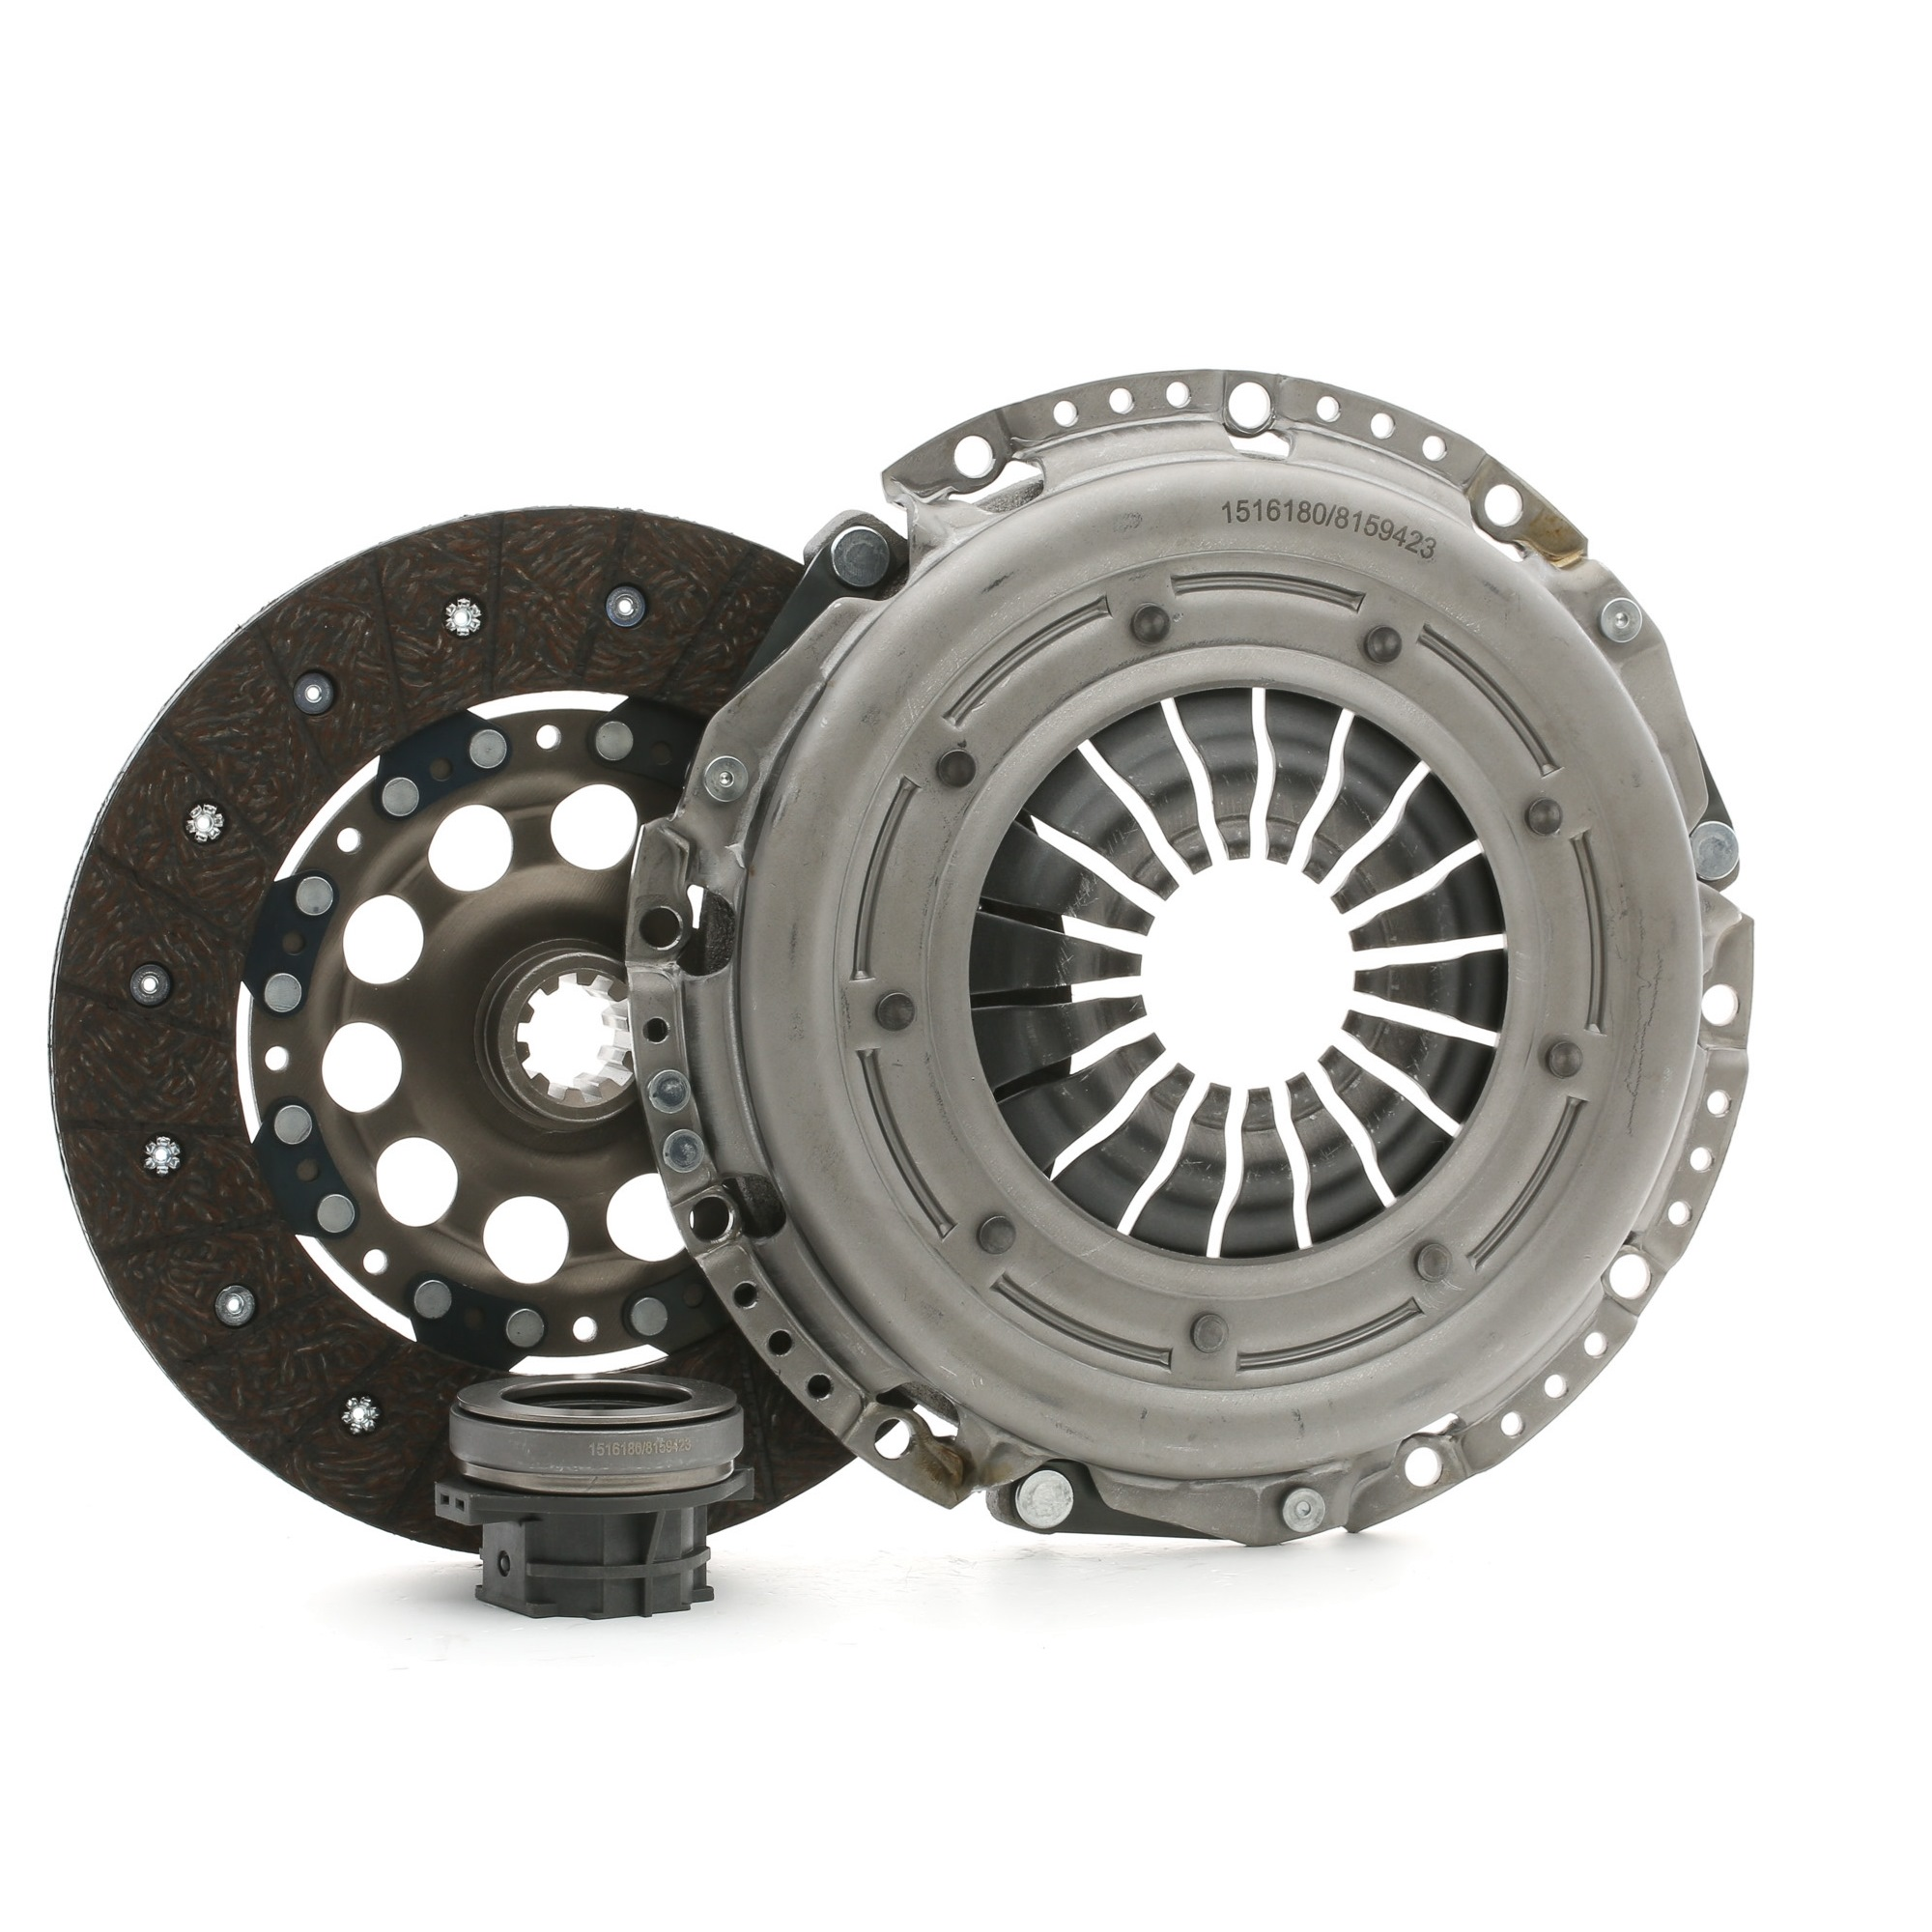 BMW Z3 2003 Clutch set RIDEX 479C0103: for engines with dual-mass flywheel, with clutch pressure plate, Check and replace dual-mass flywheel if necessary., with clutch disc